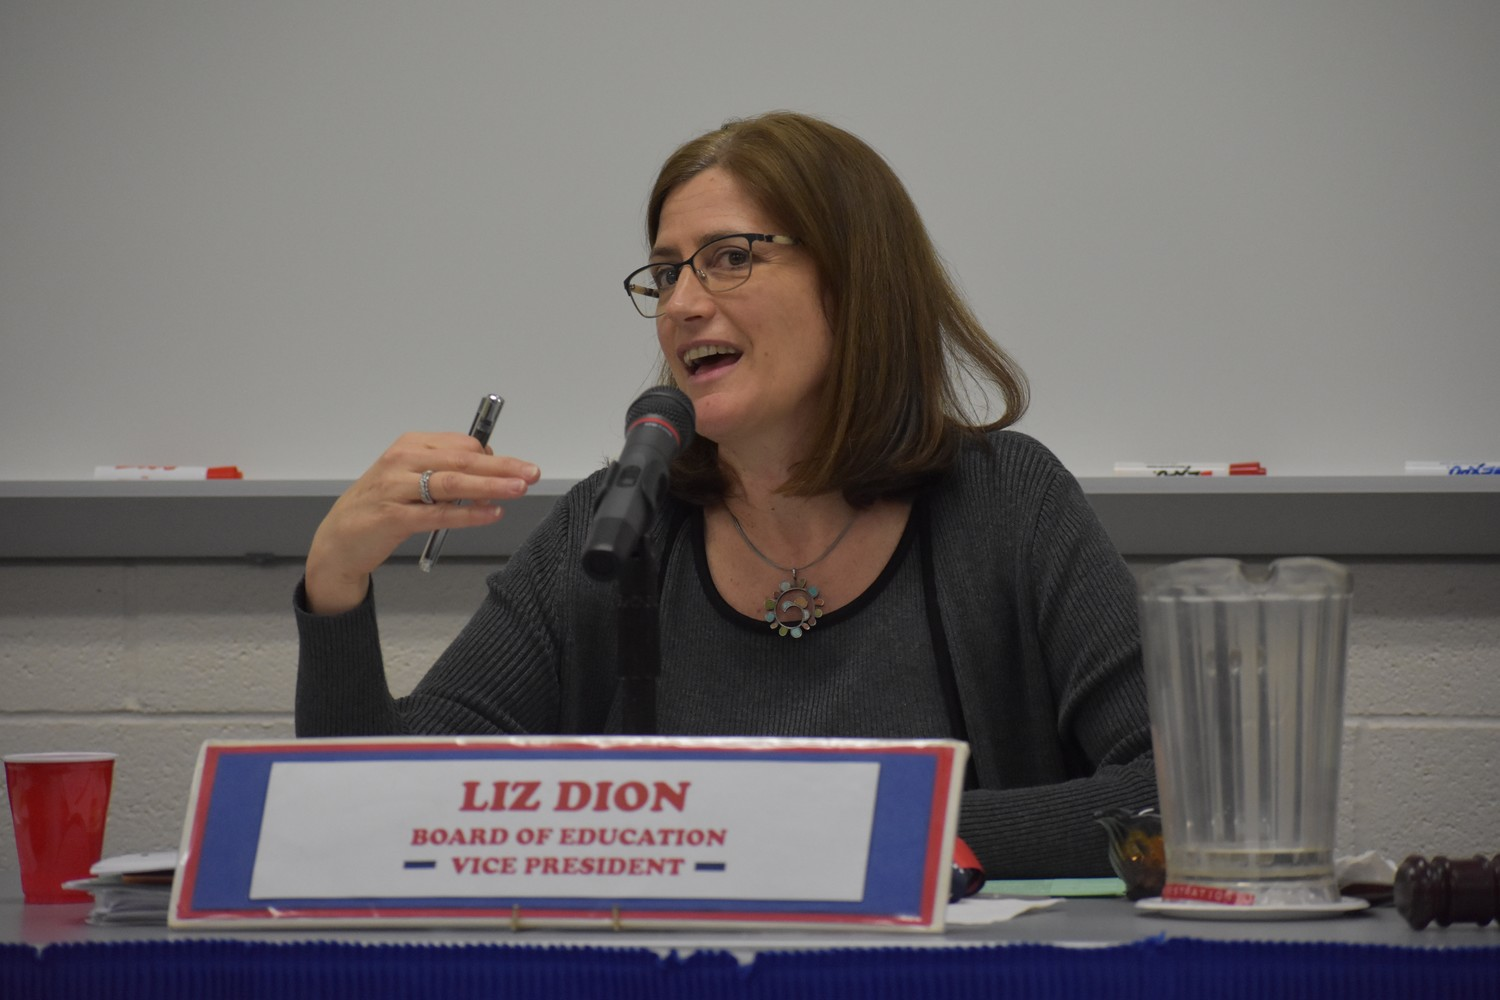 Liz Dion will run uncontested in this year's Board of Education election.